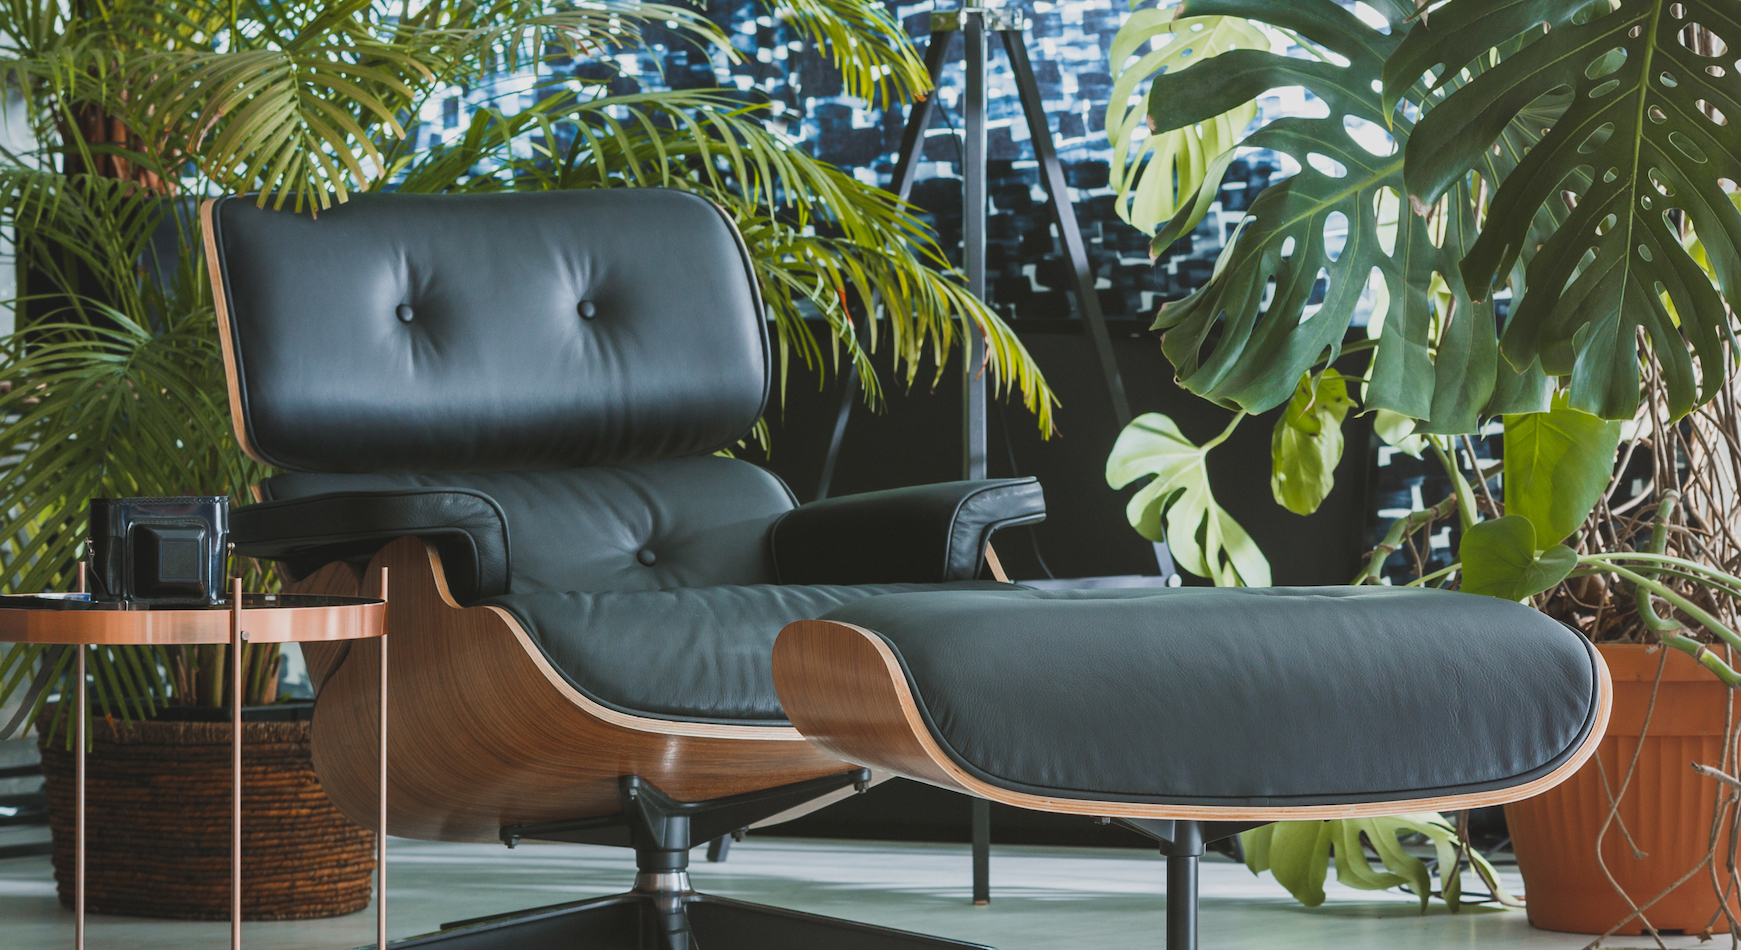 Airtight buildings are increasing in popularity but raise the risk of indoor air pollution. But now, research has shown that indoor plants can improve air quality in these self-contained environments.